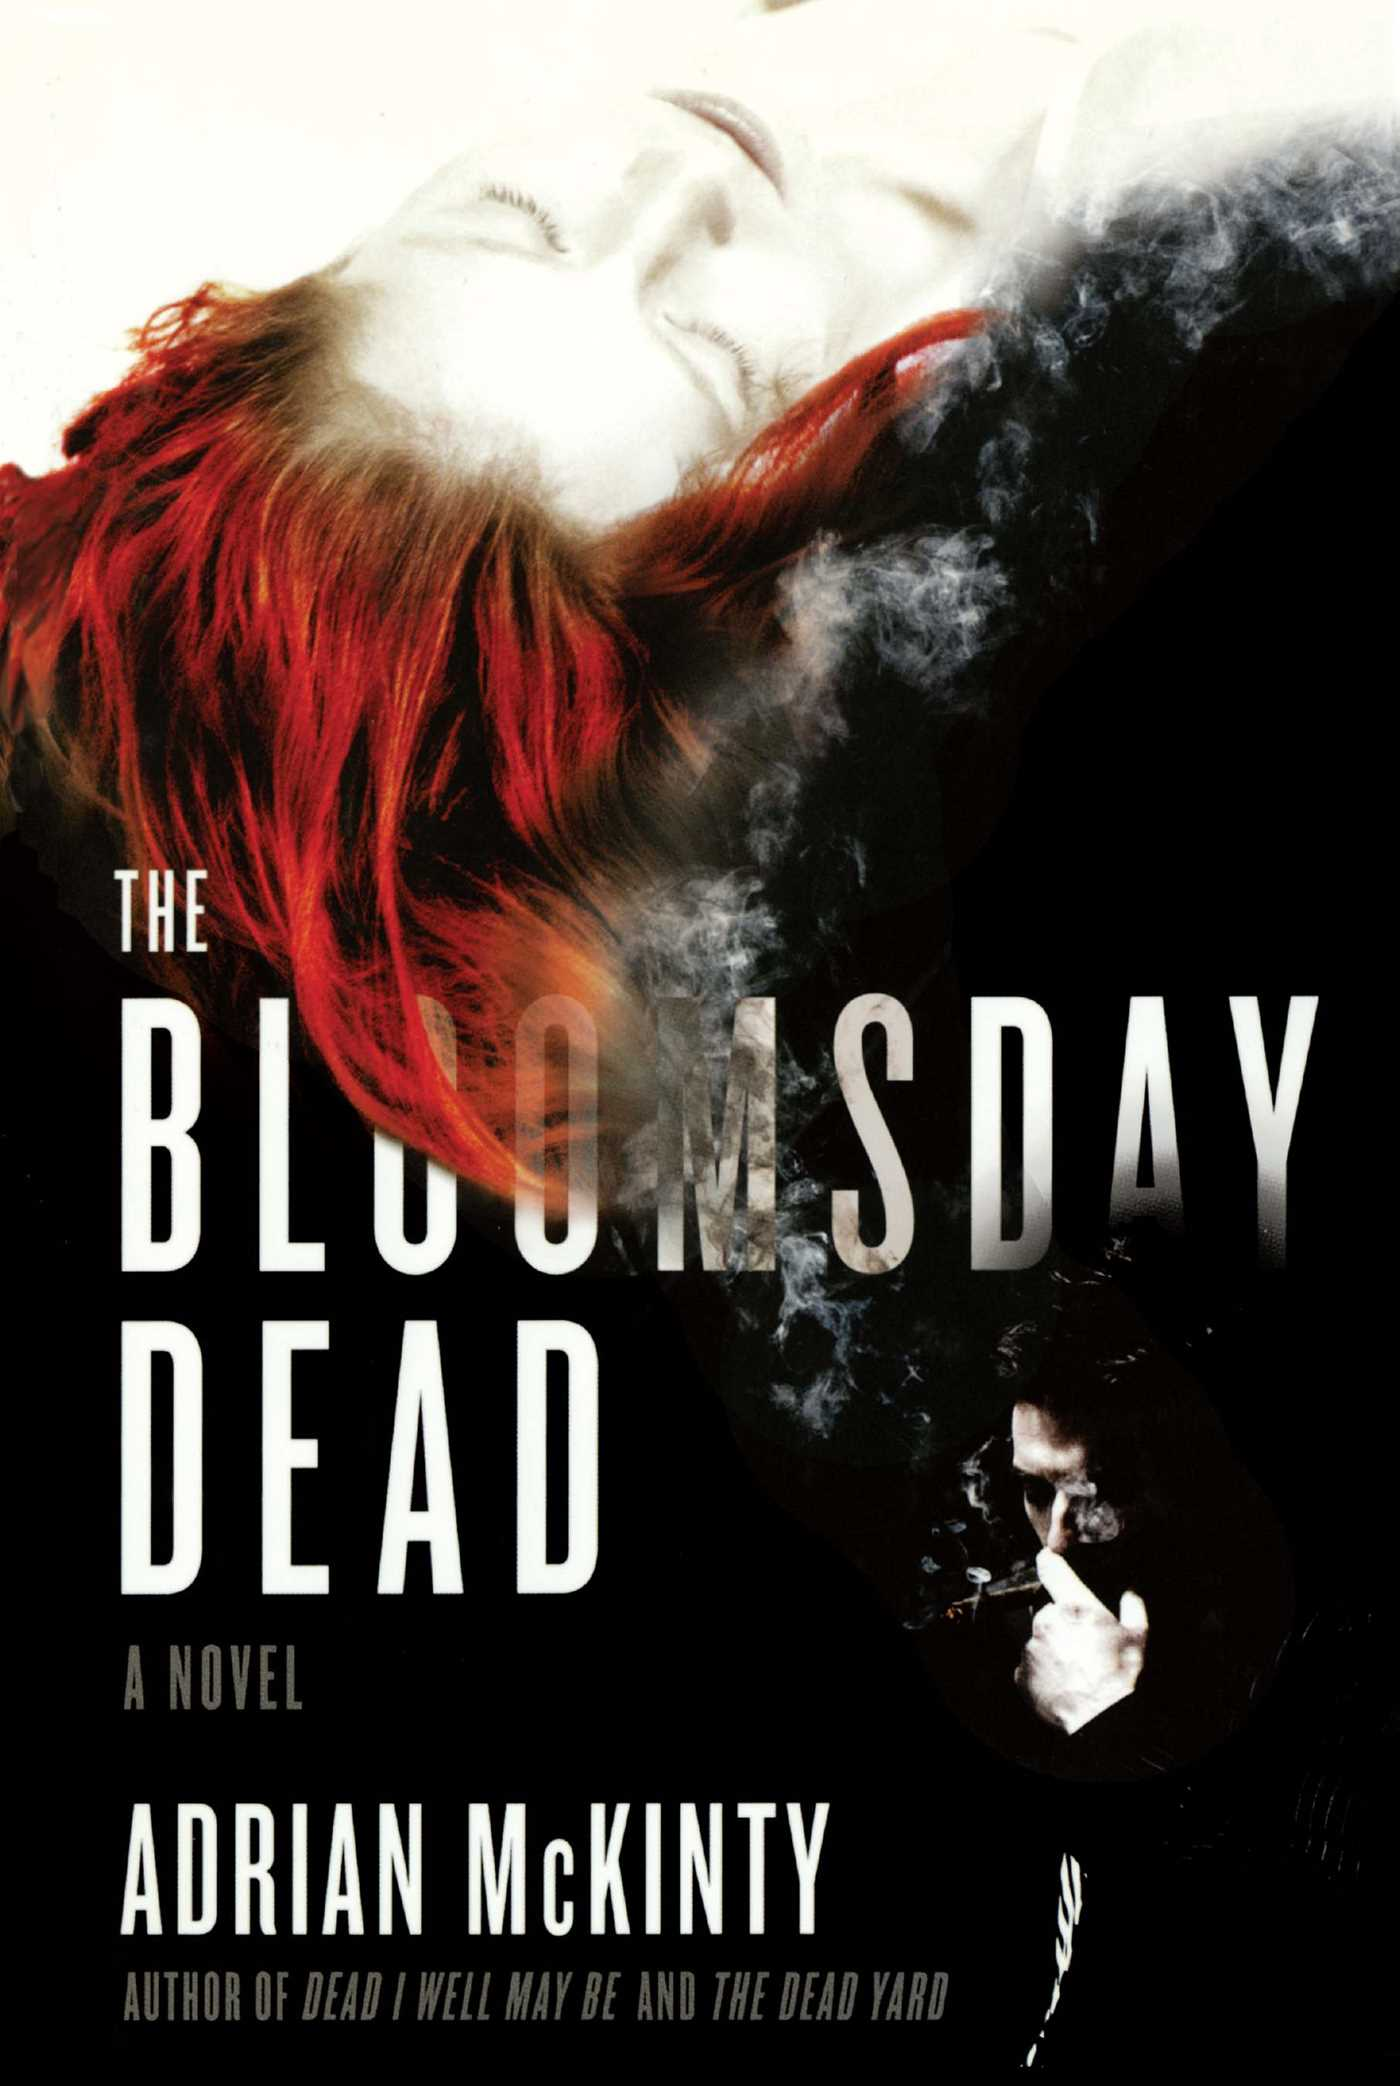 The-bloomsday-dead-9781451613230_hr